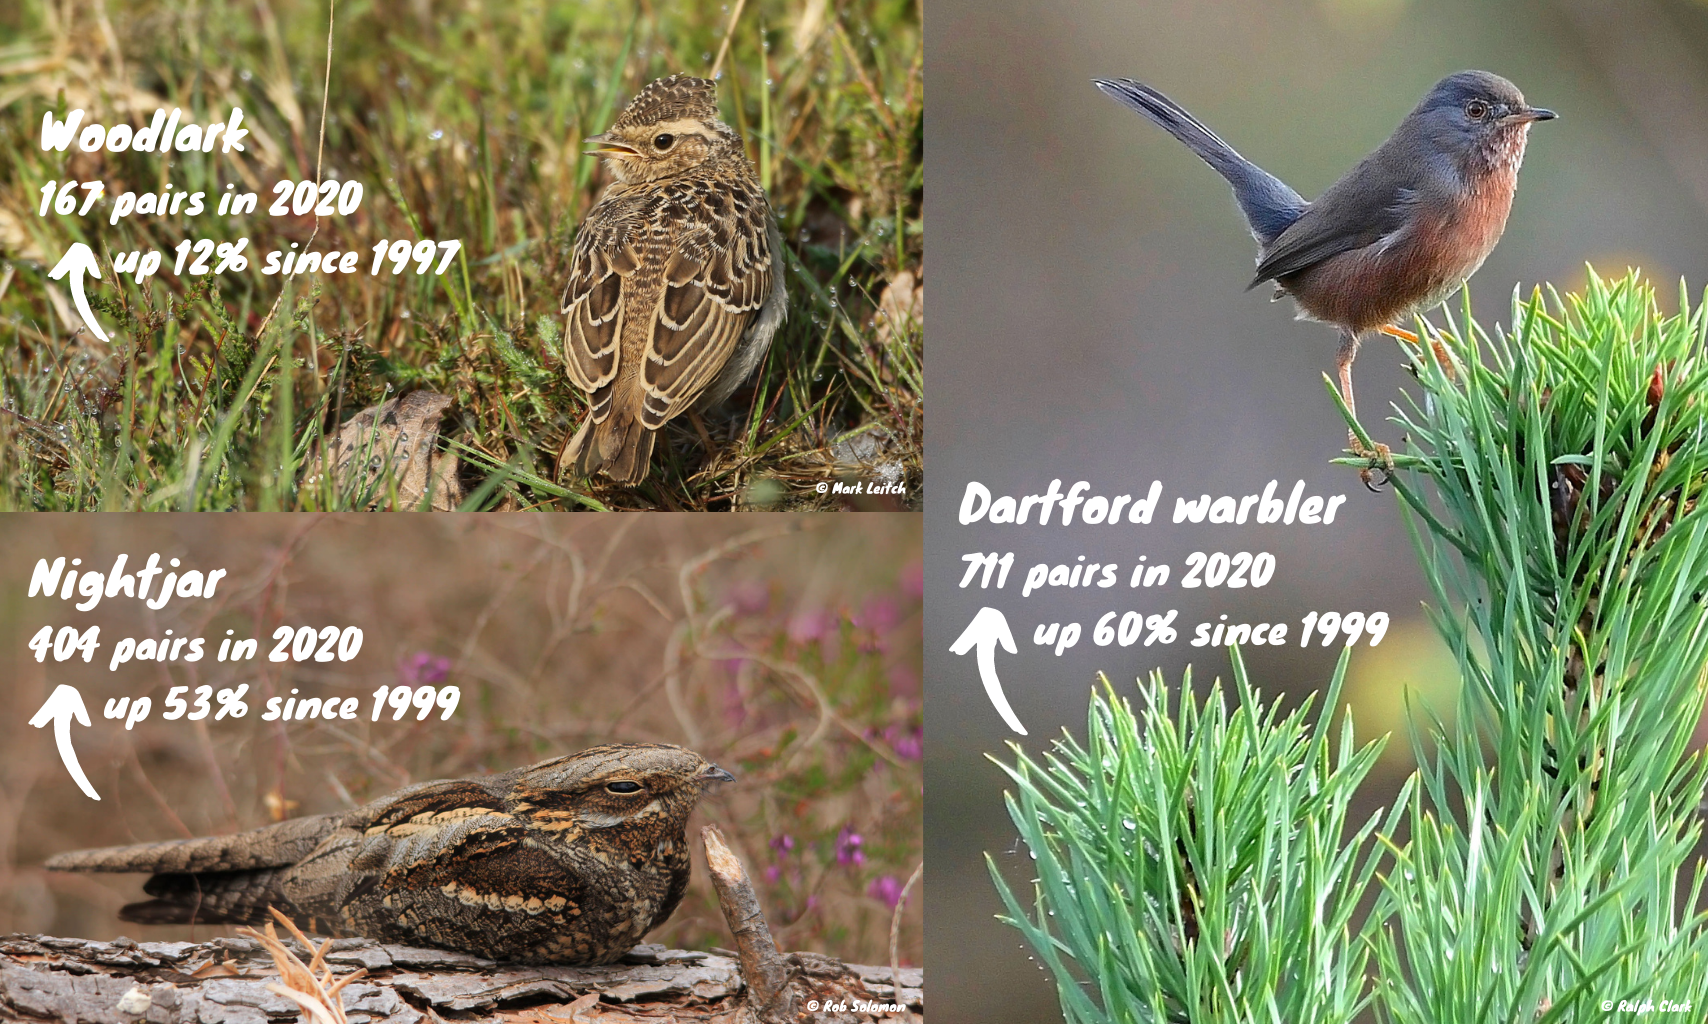 Nightjar are up 53% and Dartford warbler up 60%. The woodlark is up by 12%.